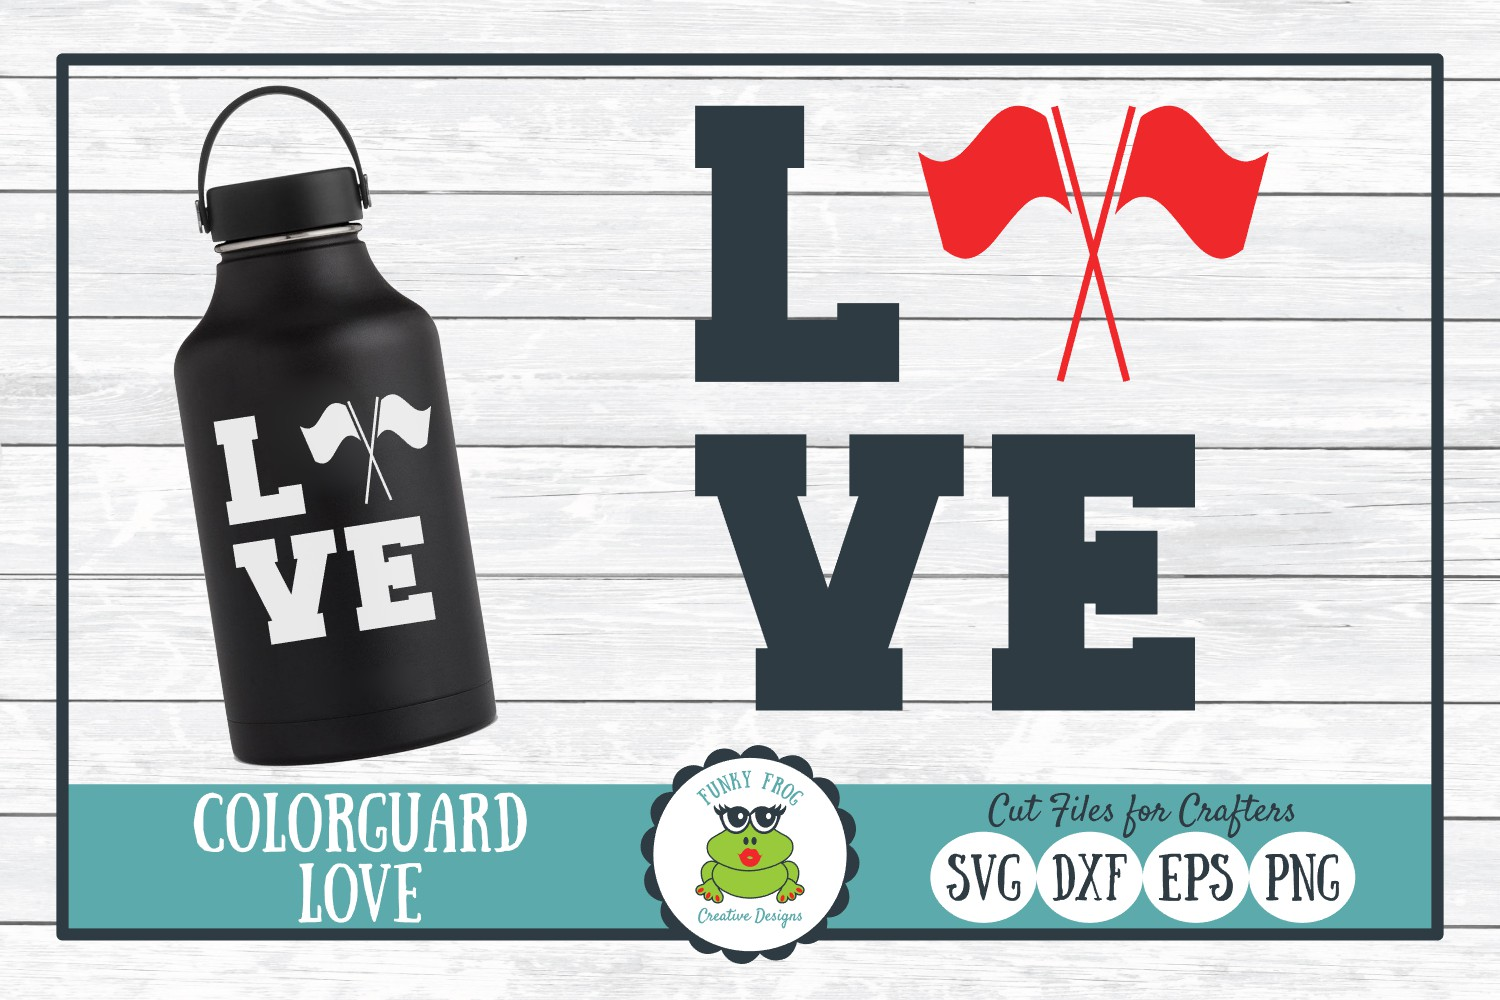 Color Guard Love, SVG Cut File for Crafters example image 1